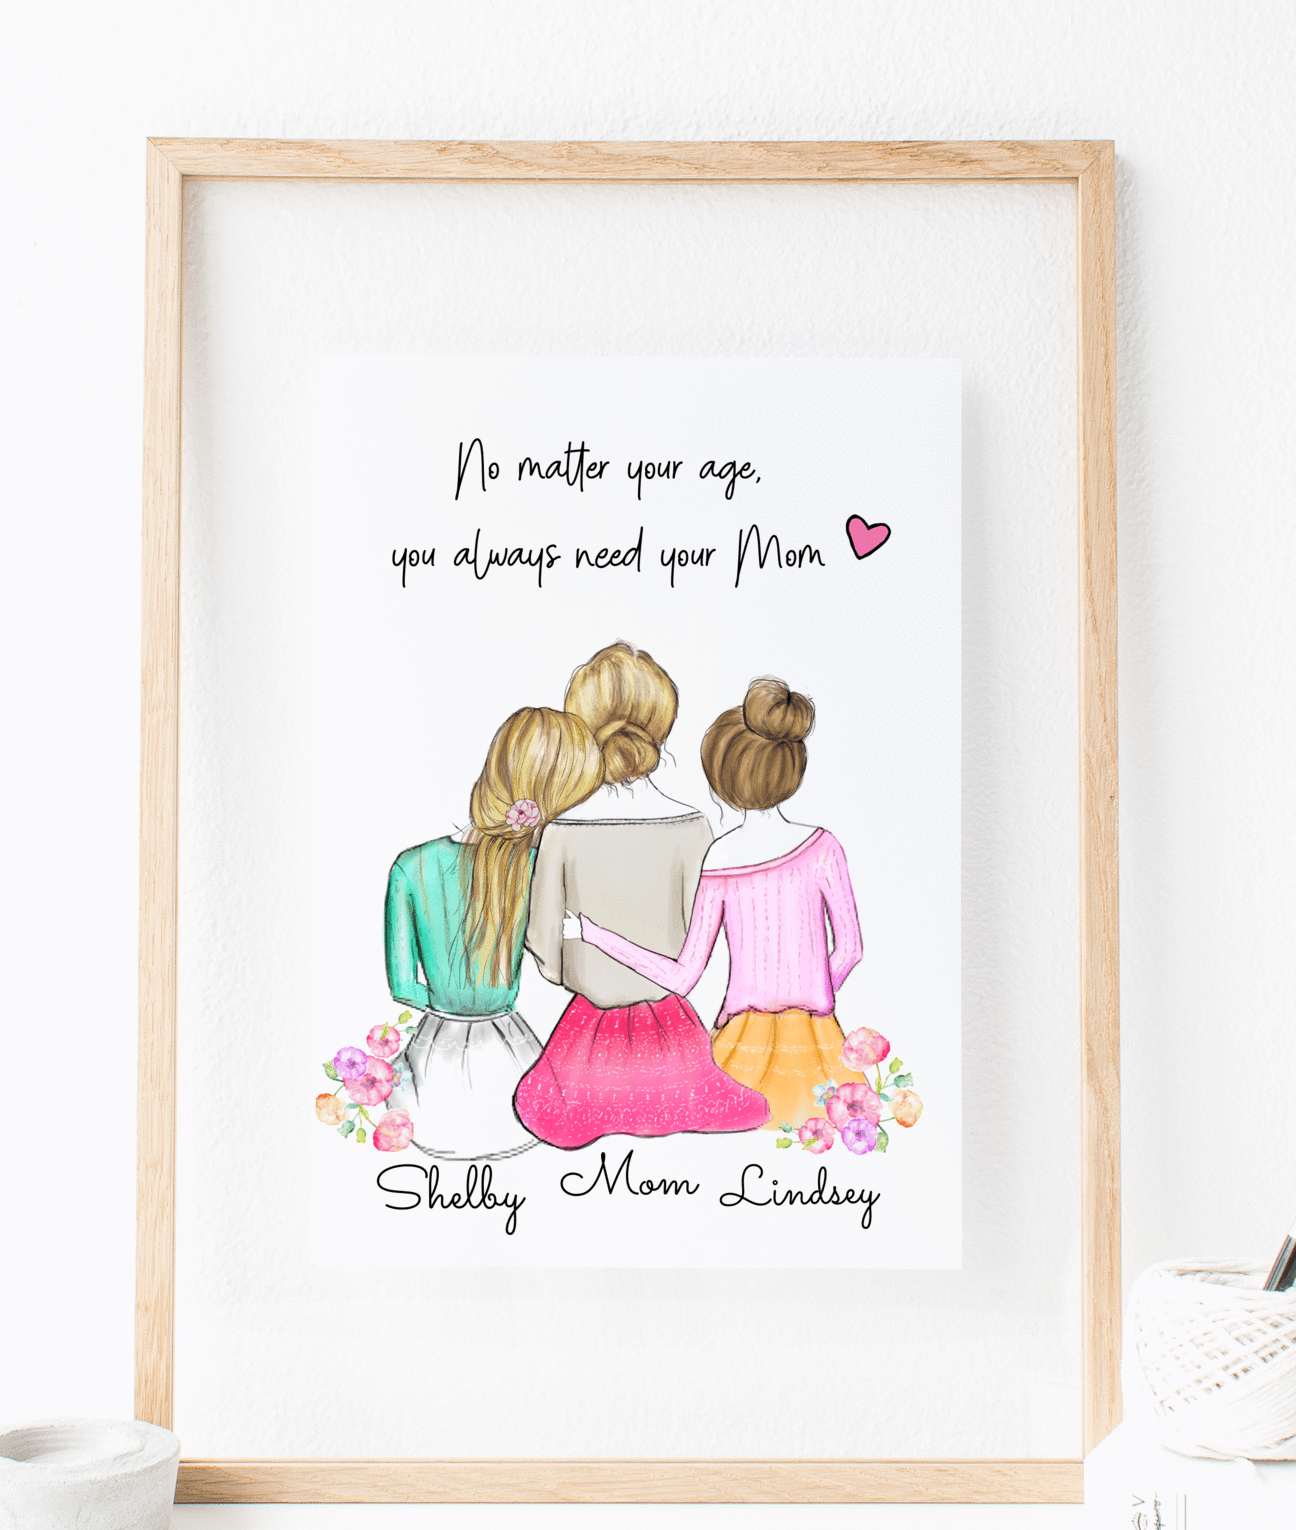 Personalized Daughters And Mom Wall Art In 2020 Friends Travel Wall Art Unique Personalized Gift